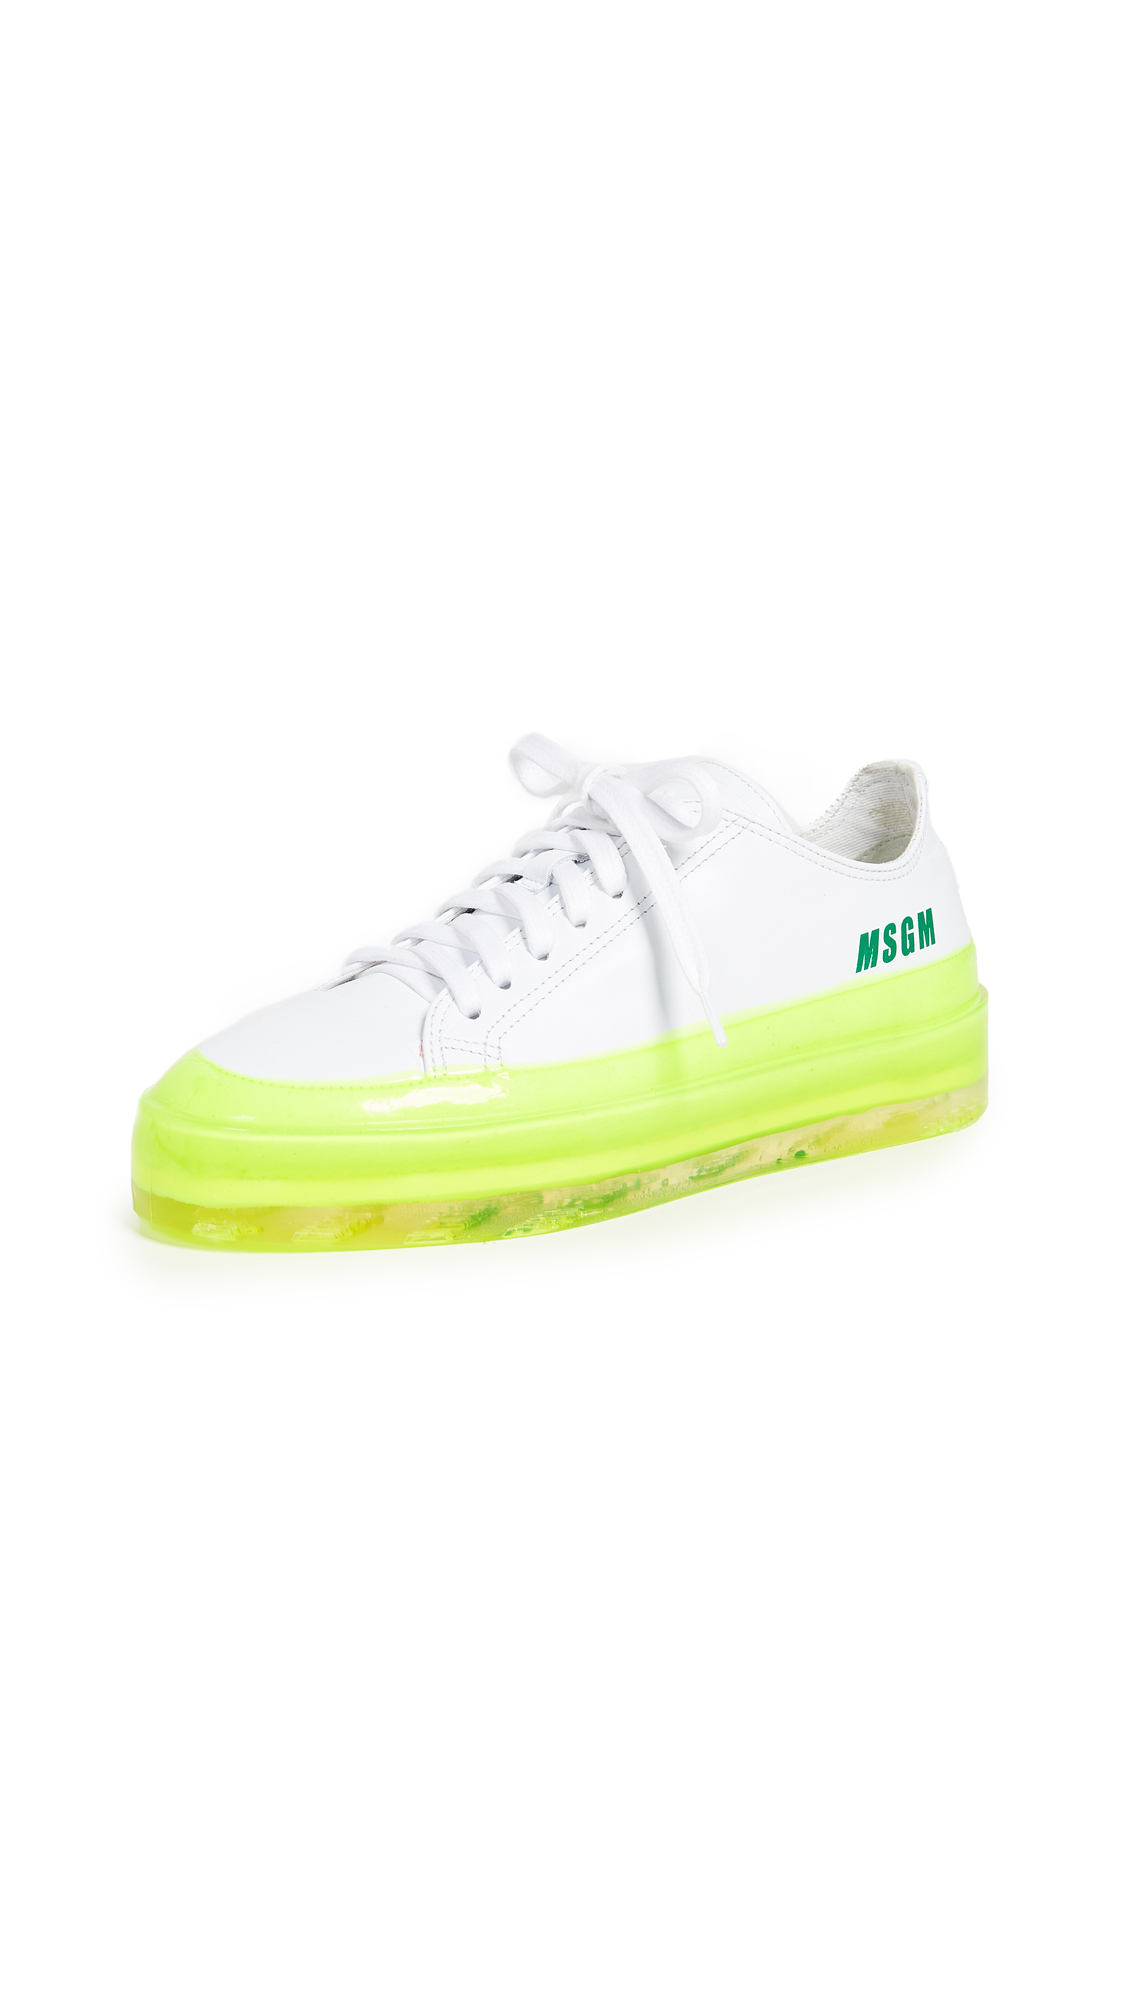 MSGM Floating Sneakers - White/Neon Yellow